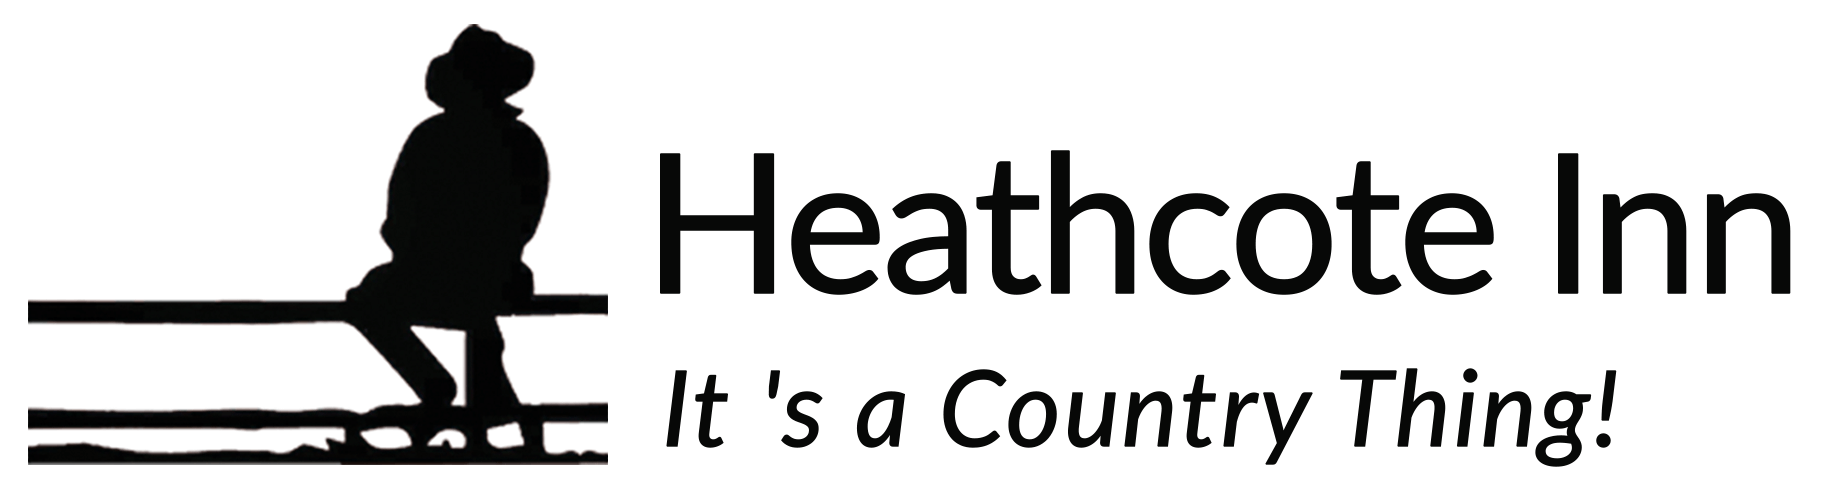 Heathcote Inn